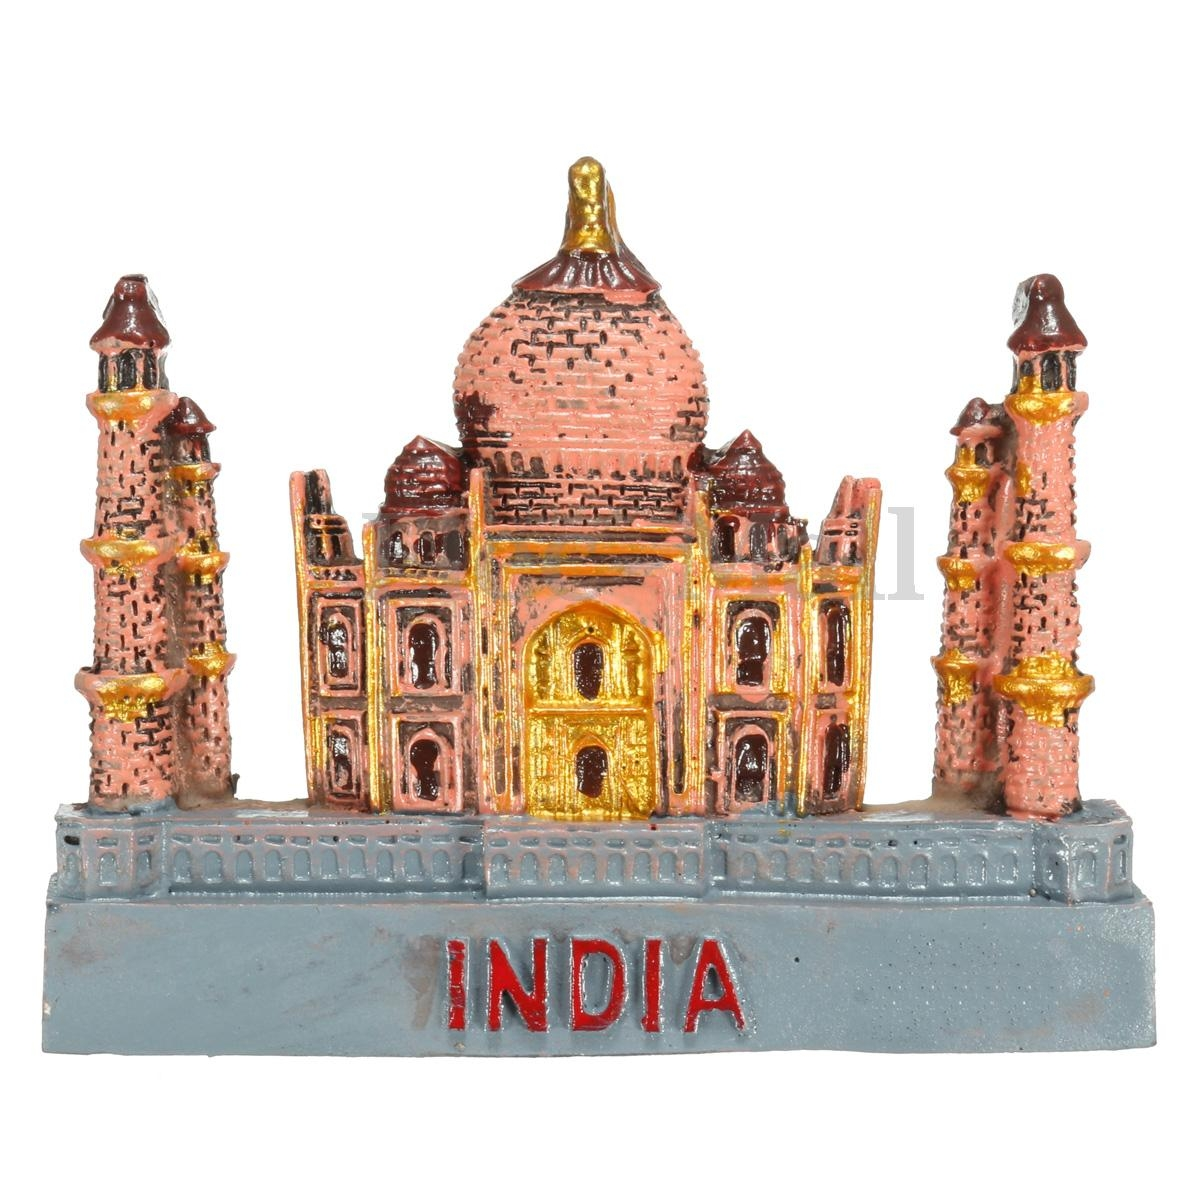 3D Resin Fridge Magnet India Taj Mahal Tourist  Souvenir Gift Decoration